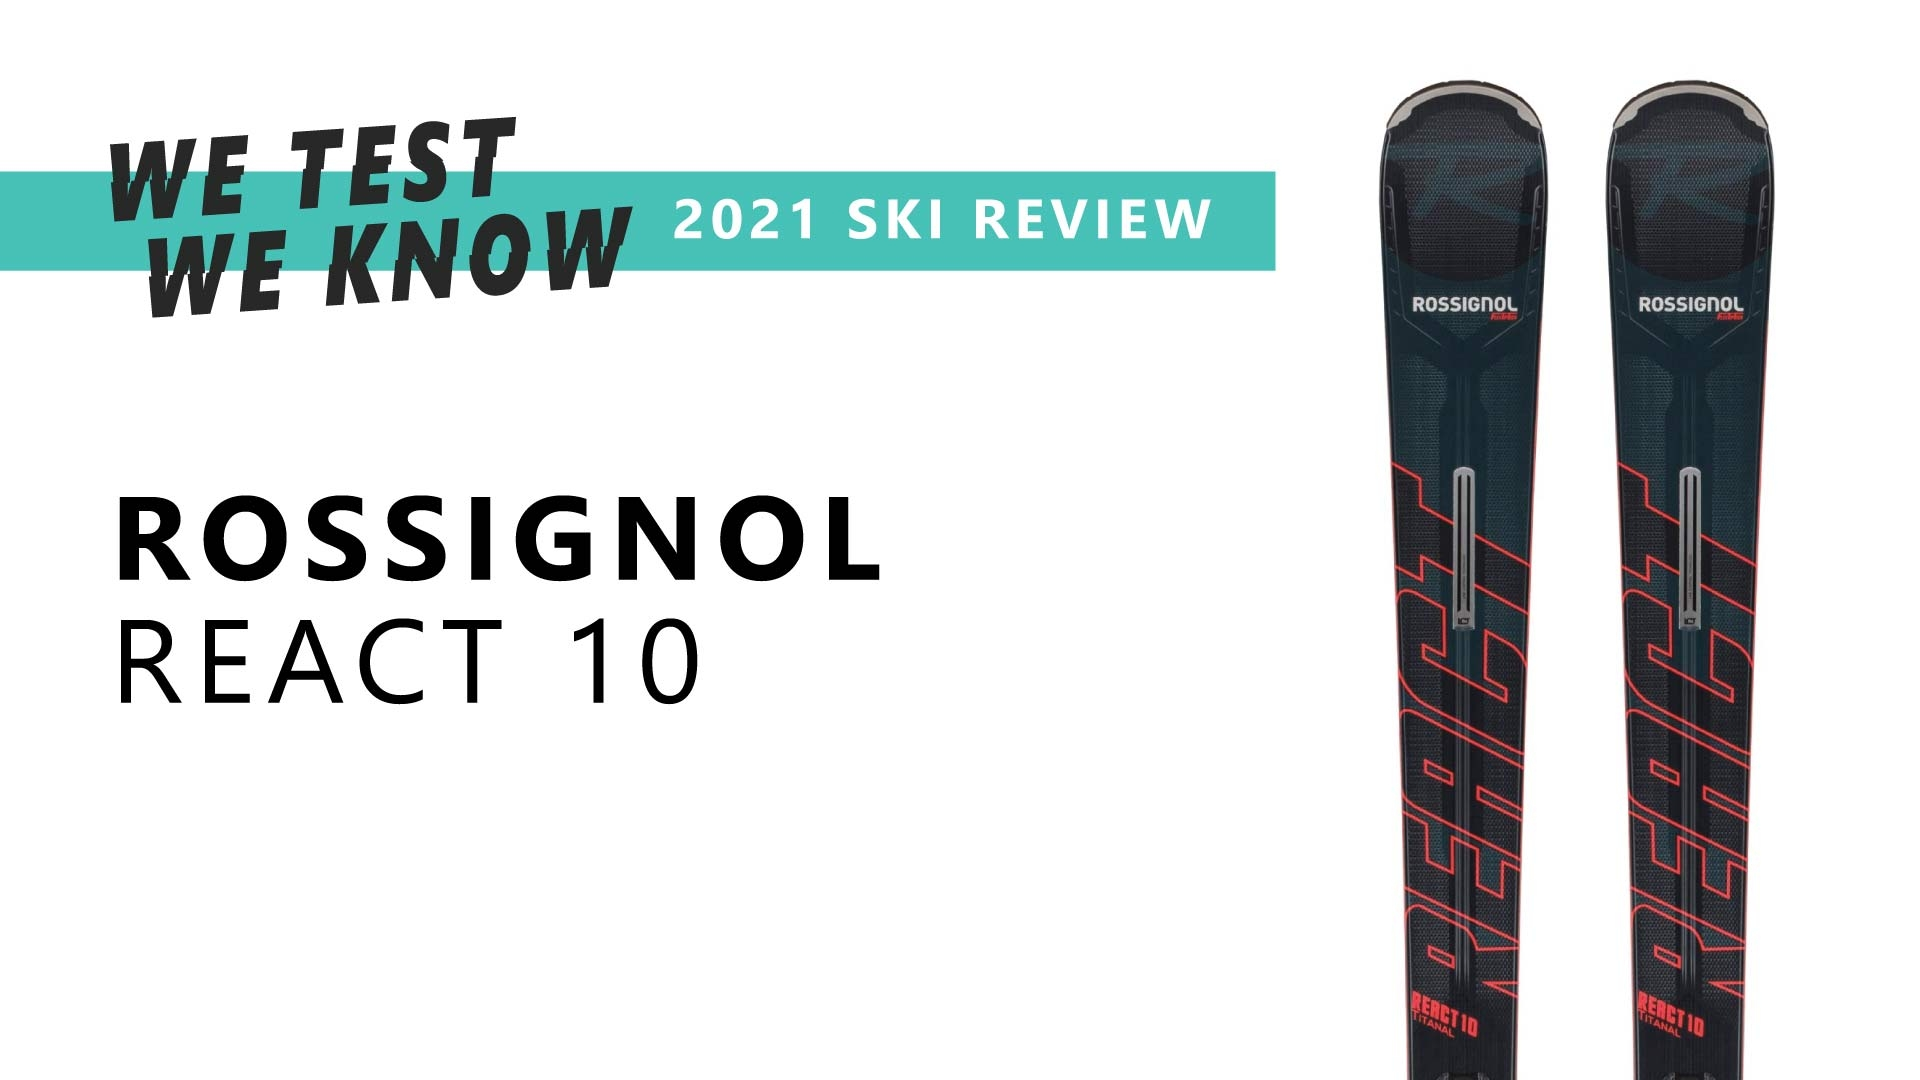 ROSSIGNOL REACT 10 | 2021 SKI REVIEW